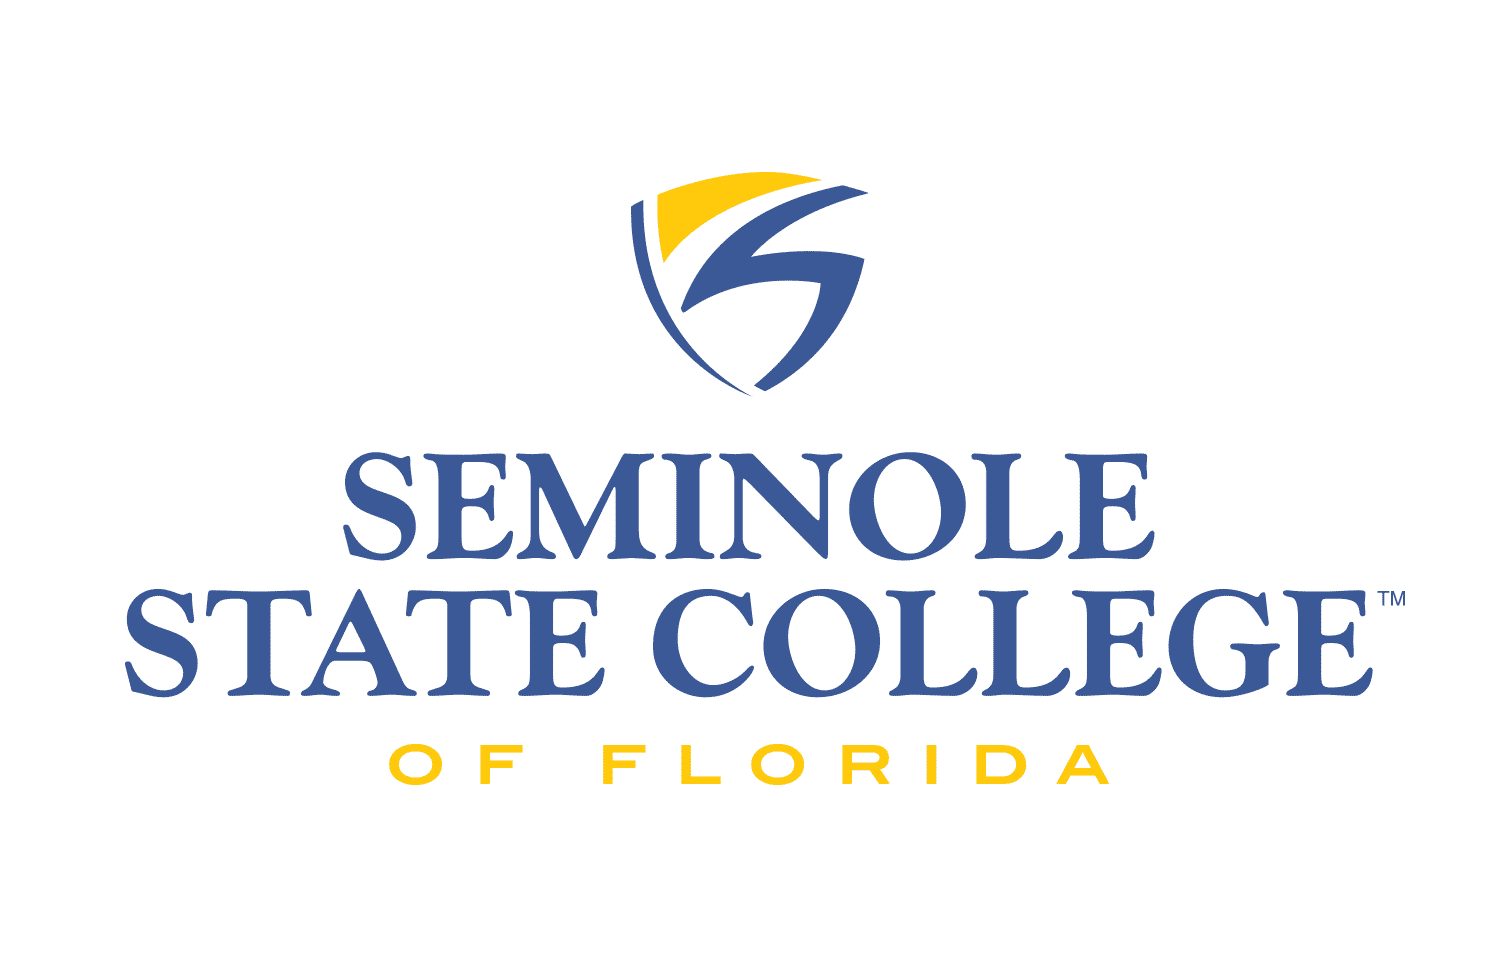 Seminole State College of Florida Logo - 2 Line, Centered